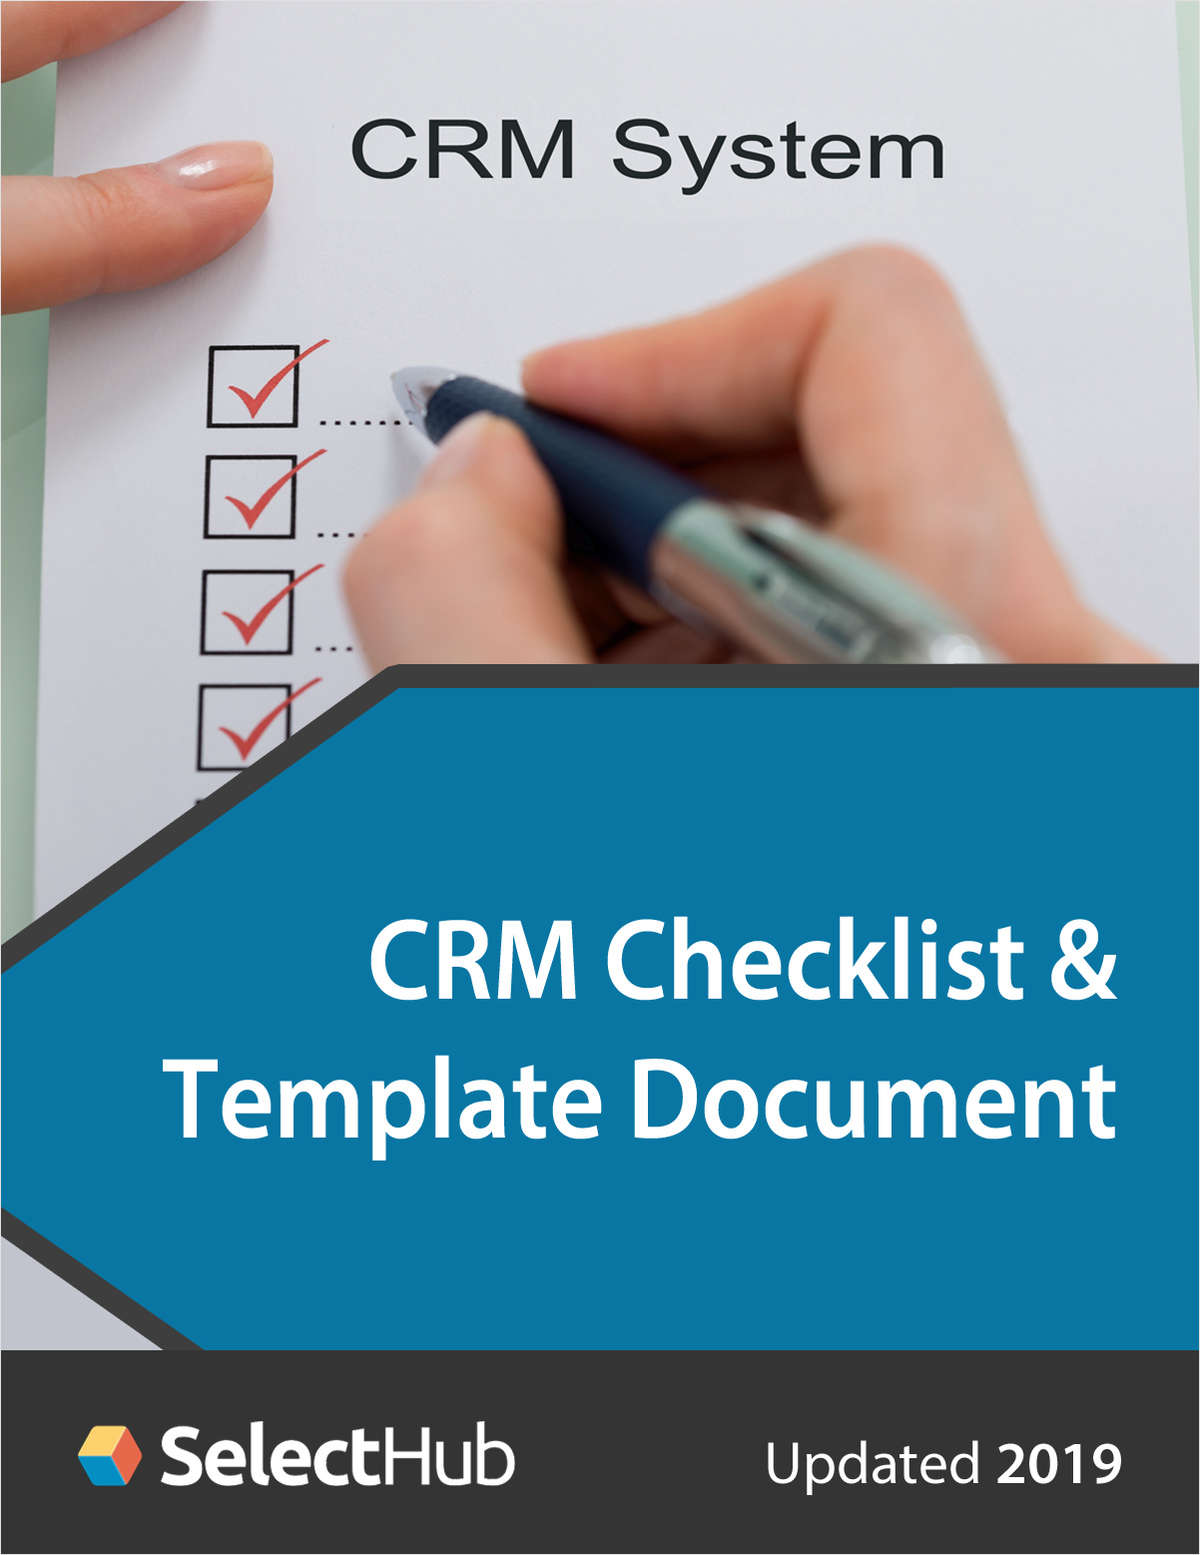 CRM Requirements Checklist and Template